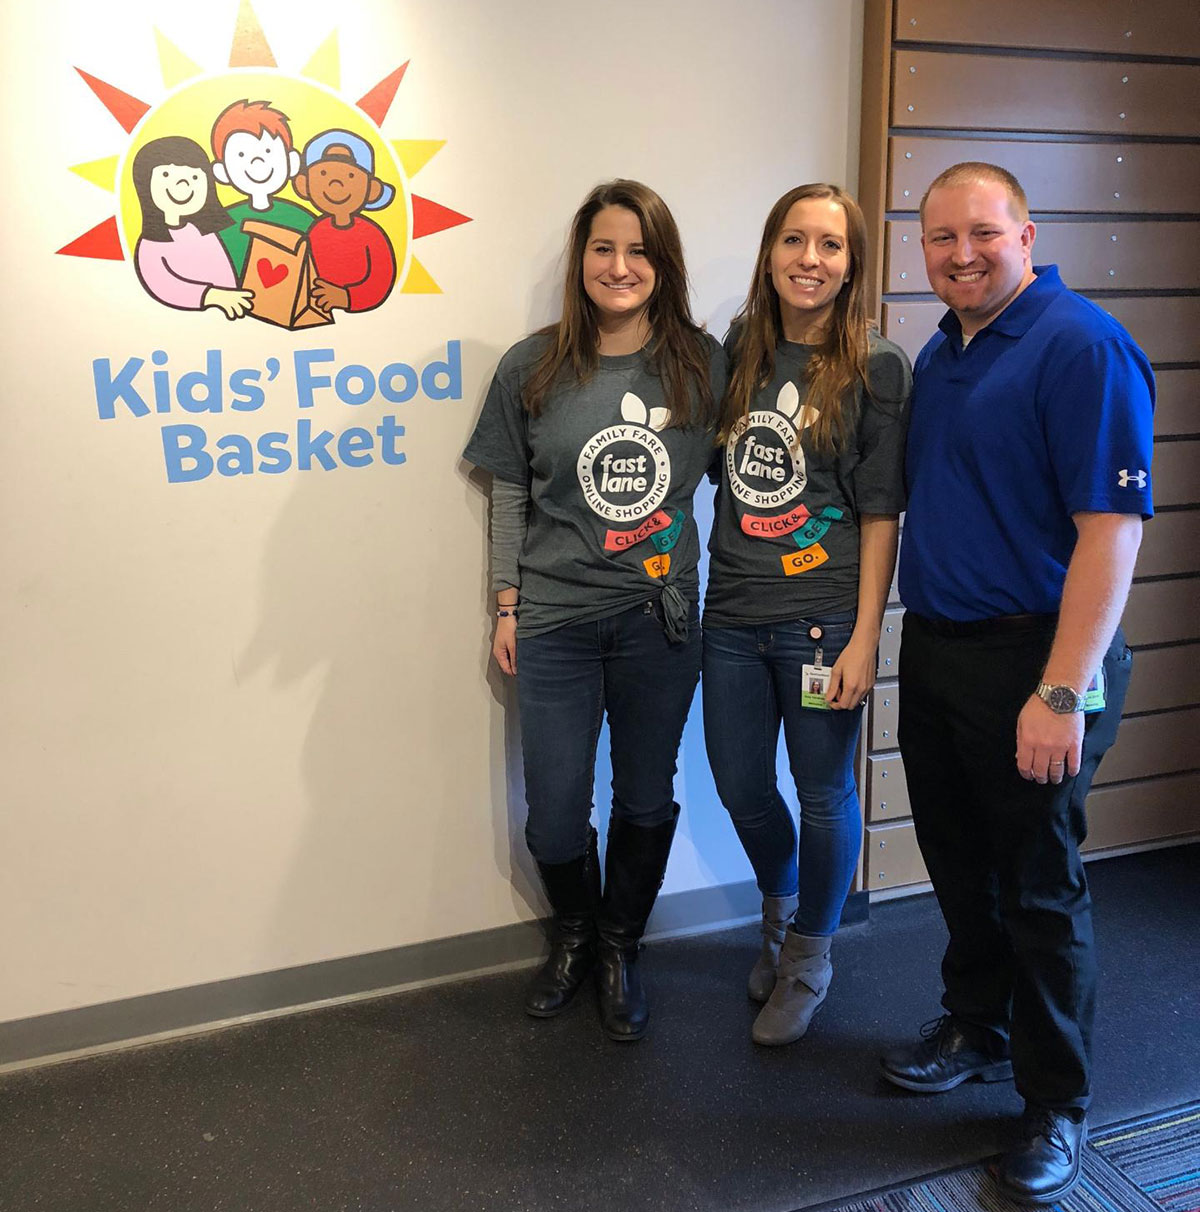 SpartanNash employees helping at the kid's food basket